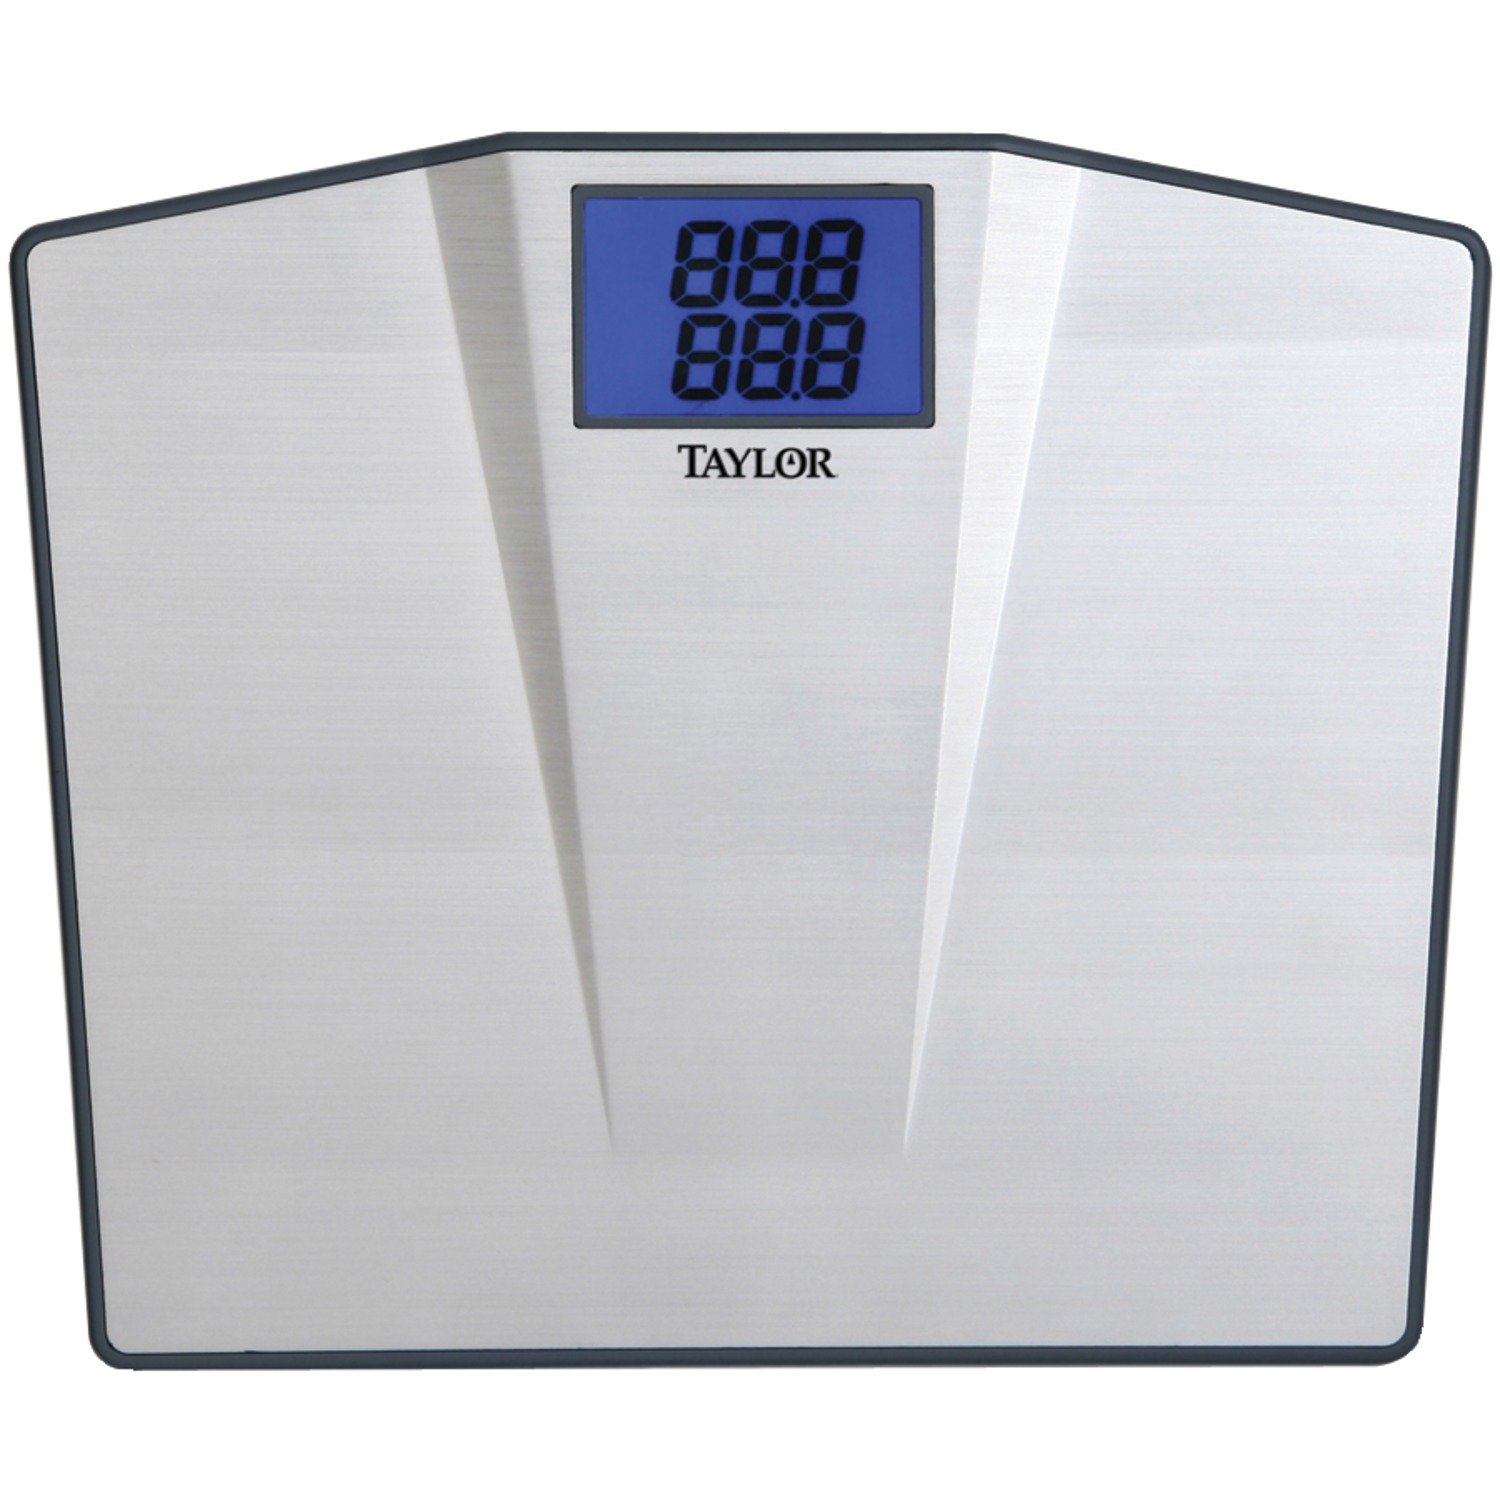 bathroom scale scales taylor home the max cal p glass gray digital depot